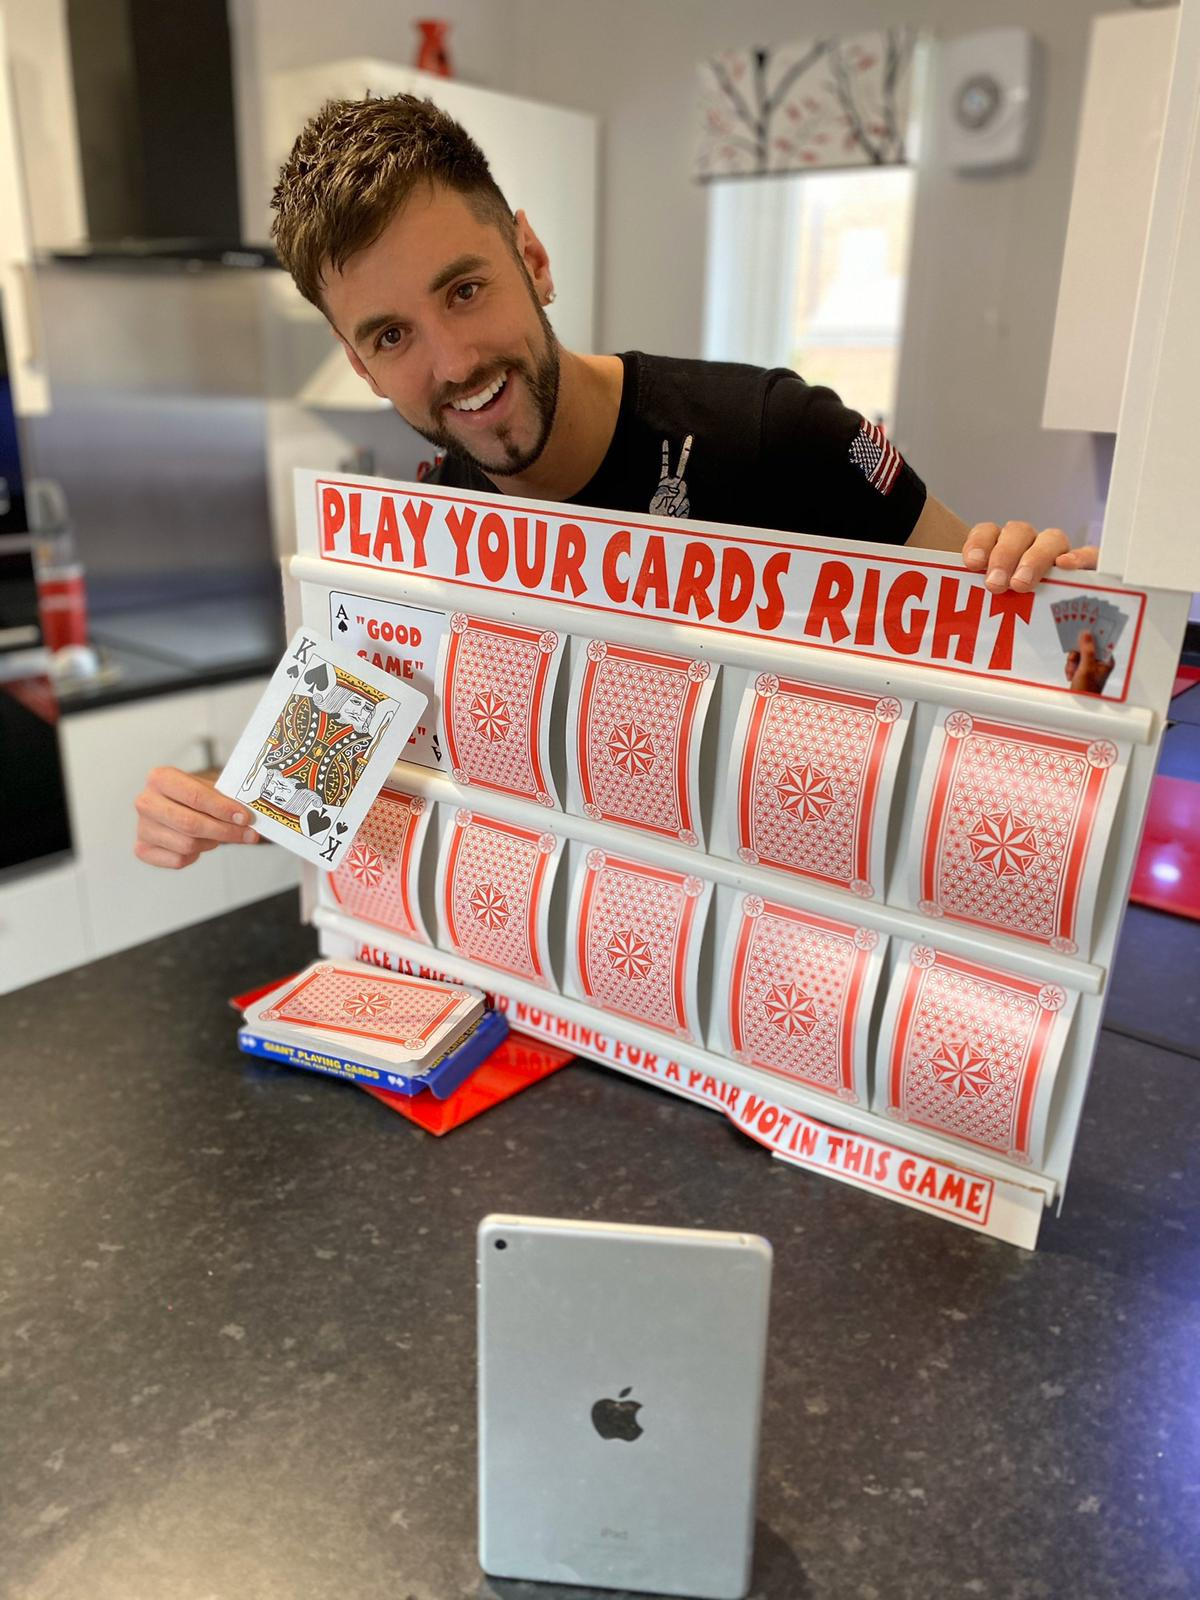 Rya's DIY Play Your Cards Right board